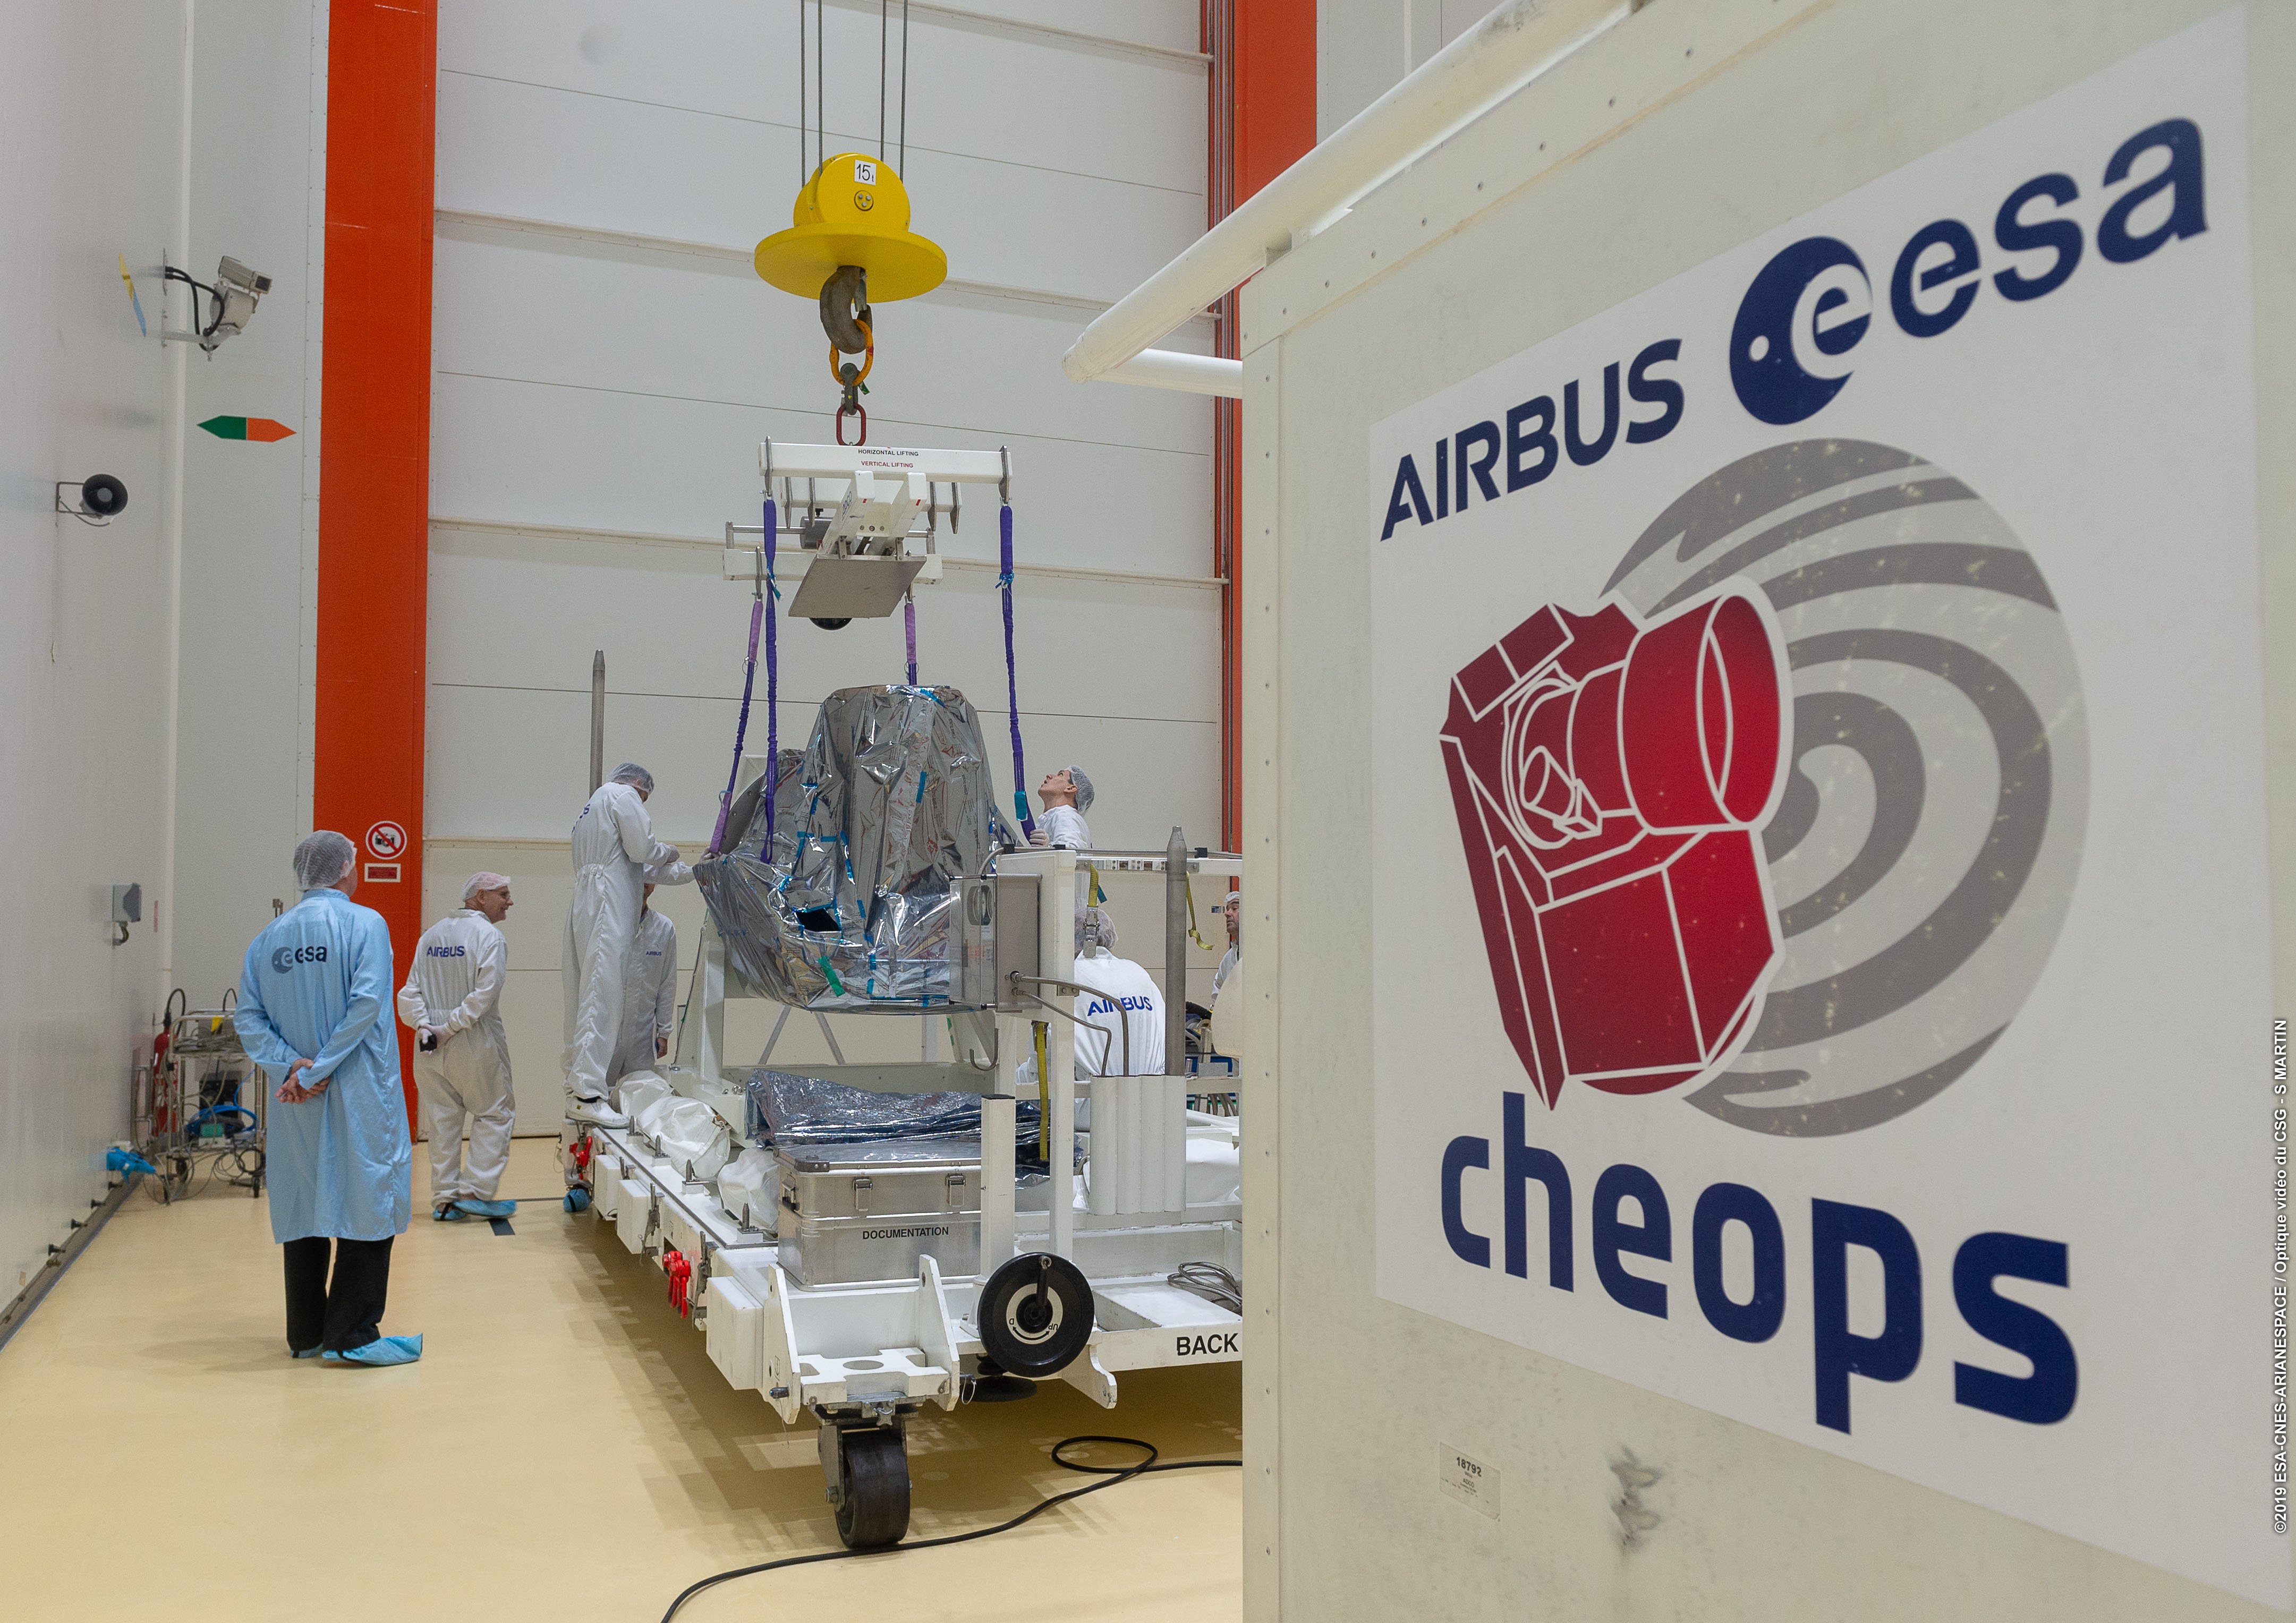 Installation_of_CHEOPS_satellite_on_tilting_trolley_1.jpg